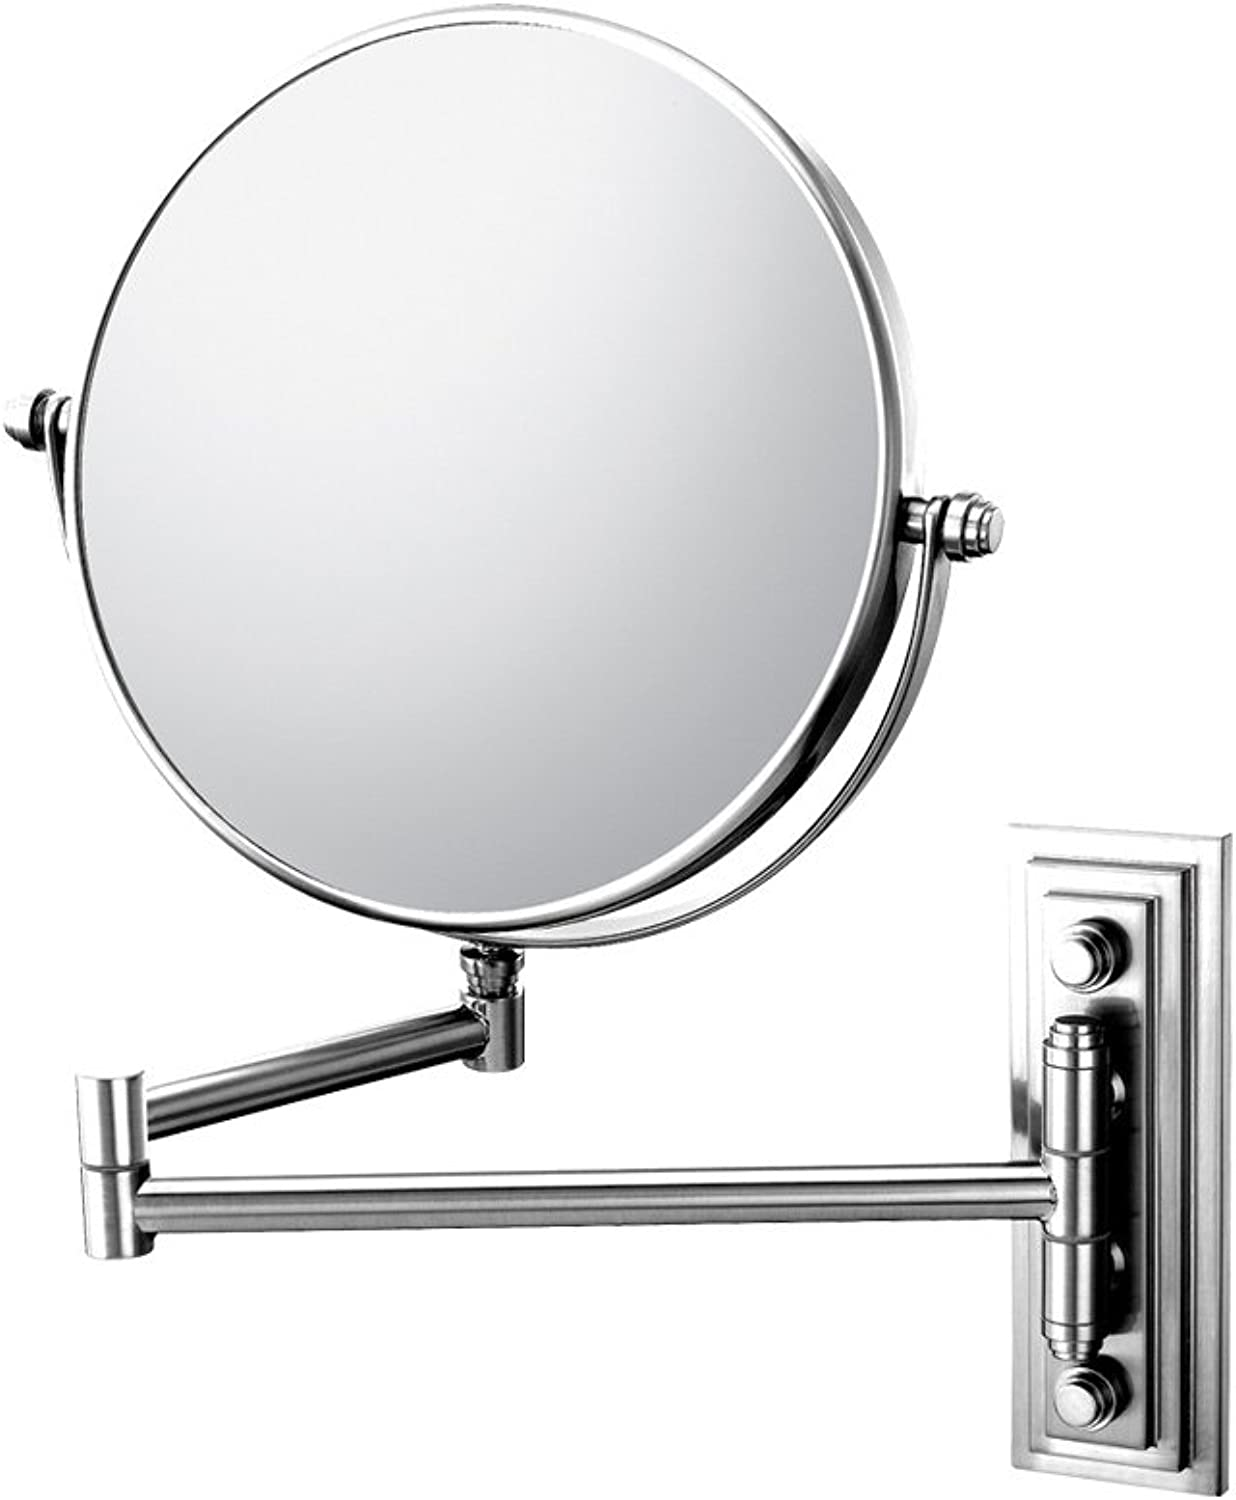 Mirror Image 20845 Classic Double Arm Wall Mirror, 1X and 5X Magnification, Chrome